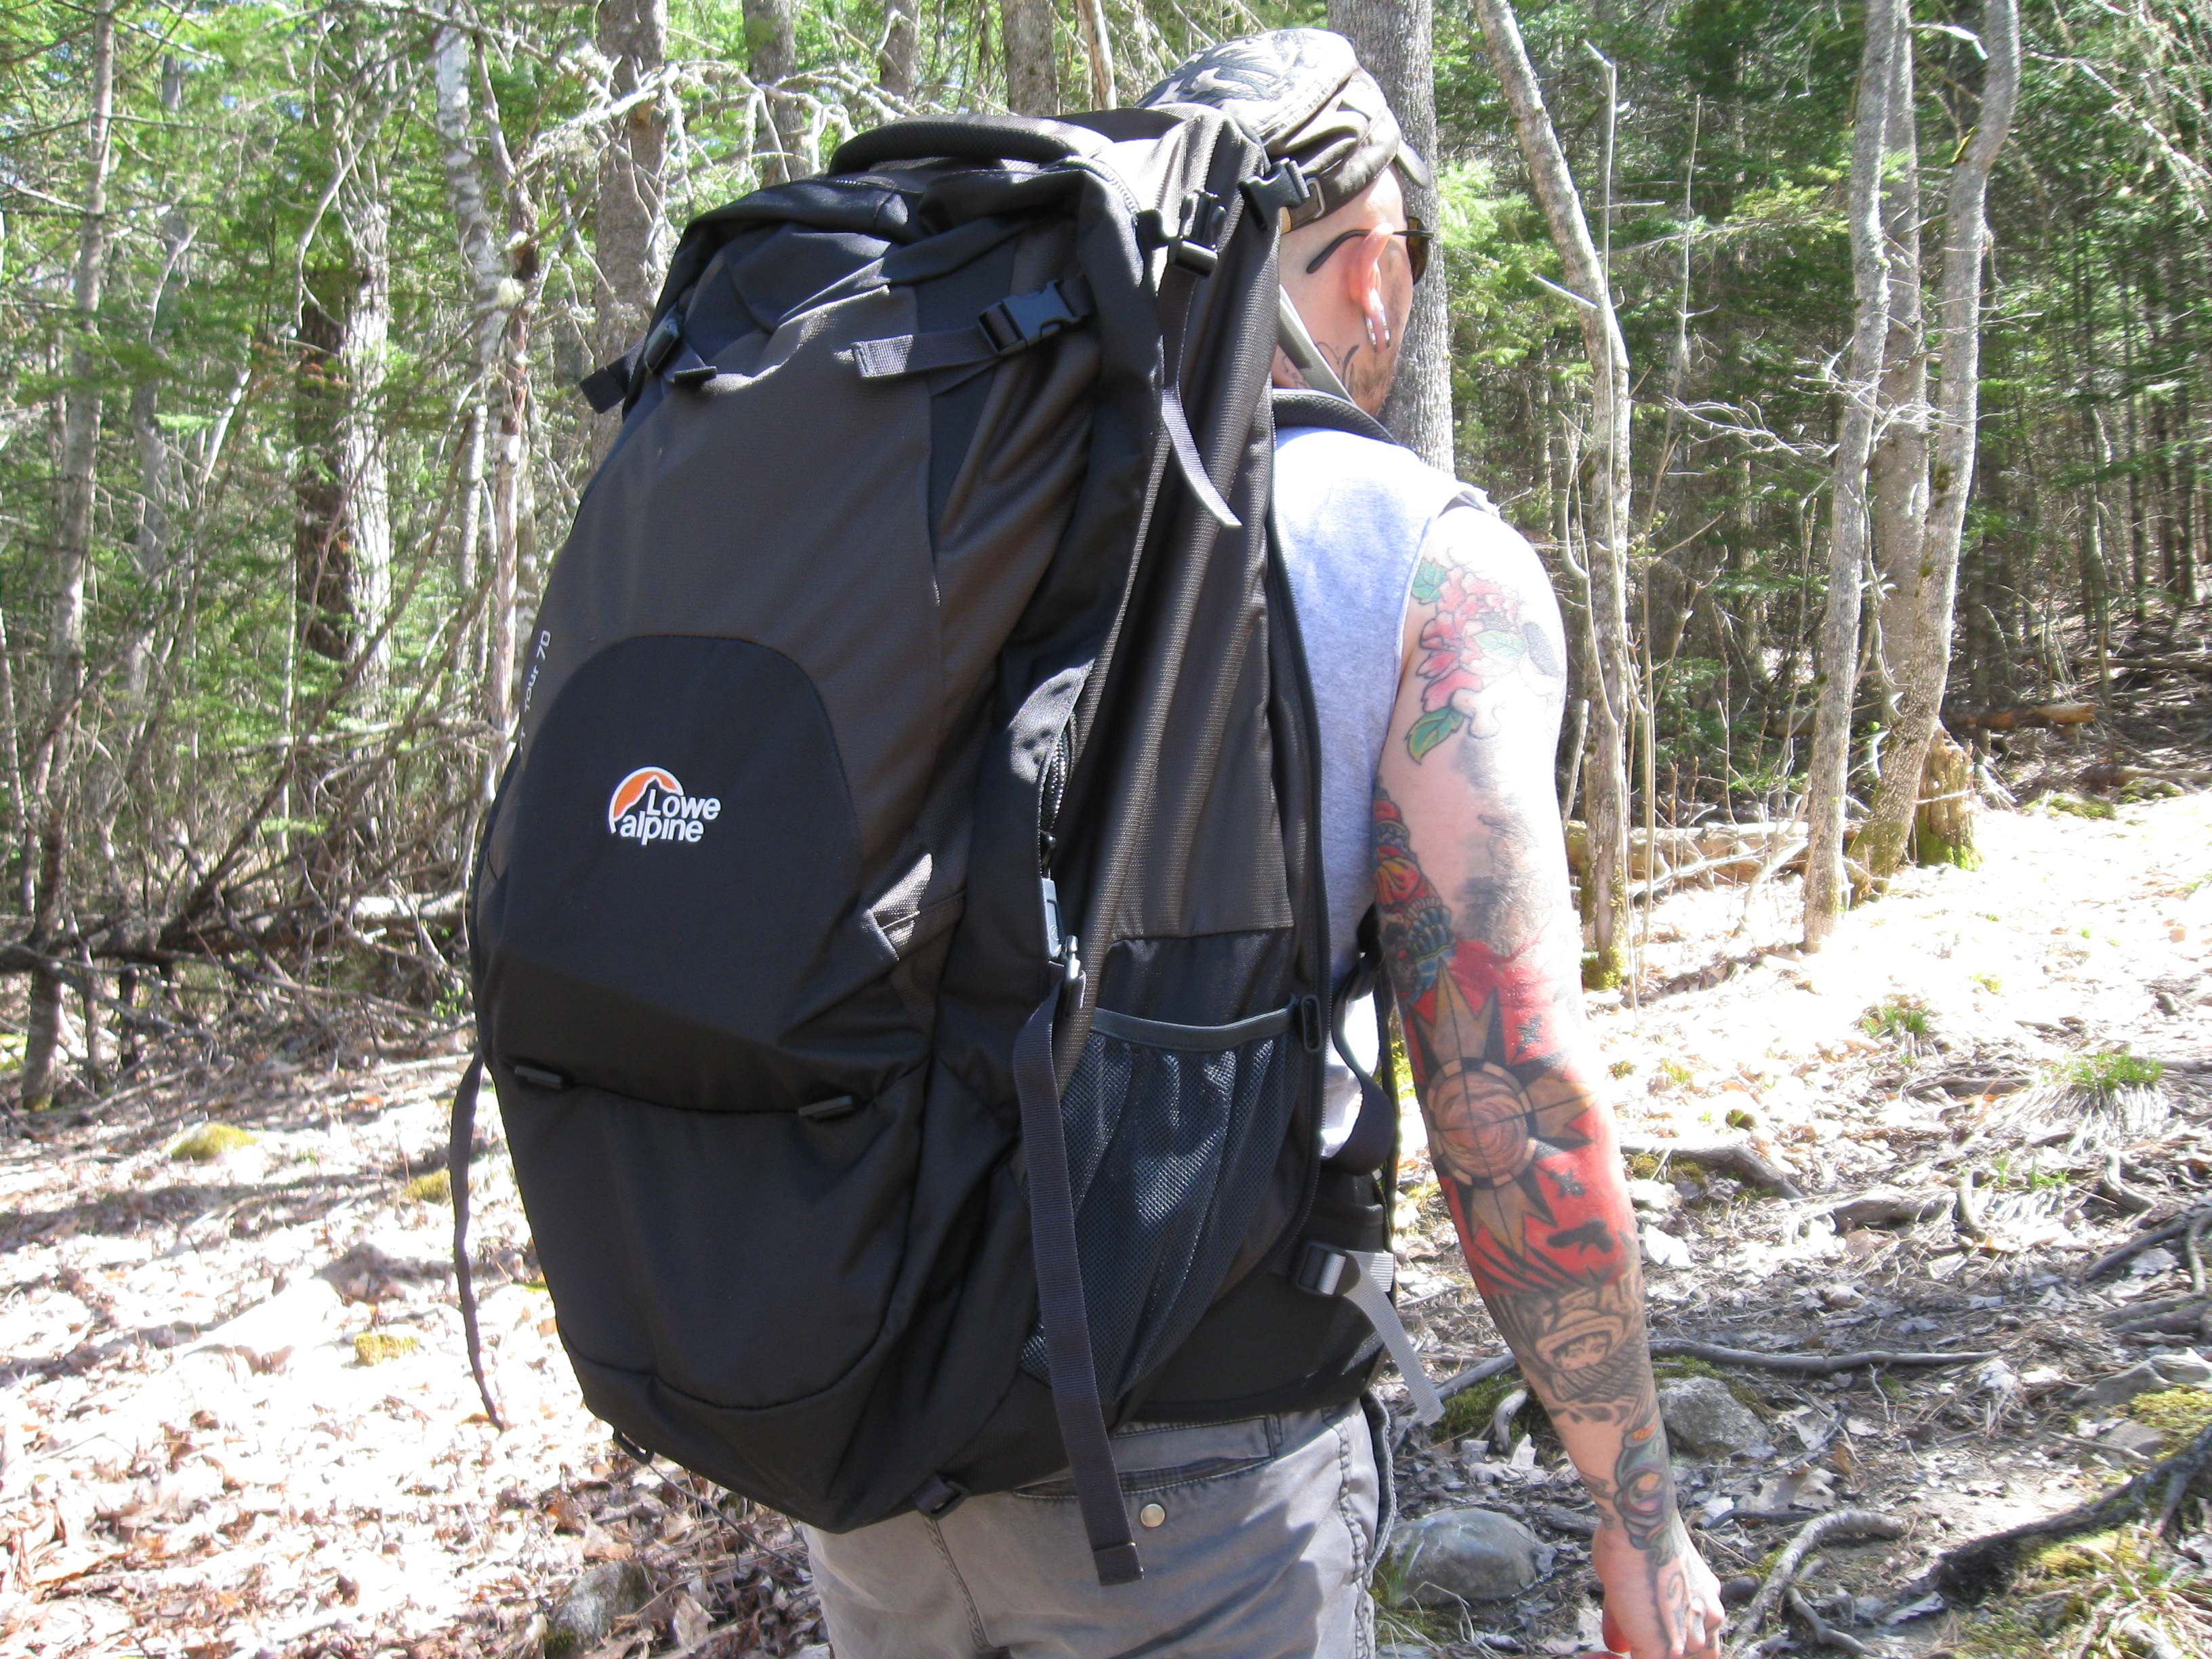 TT tour backpack in action